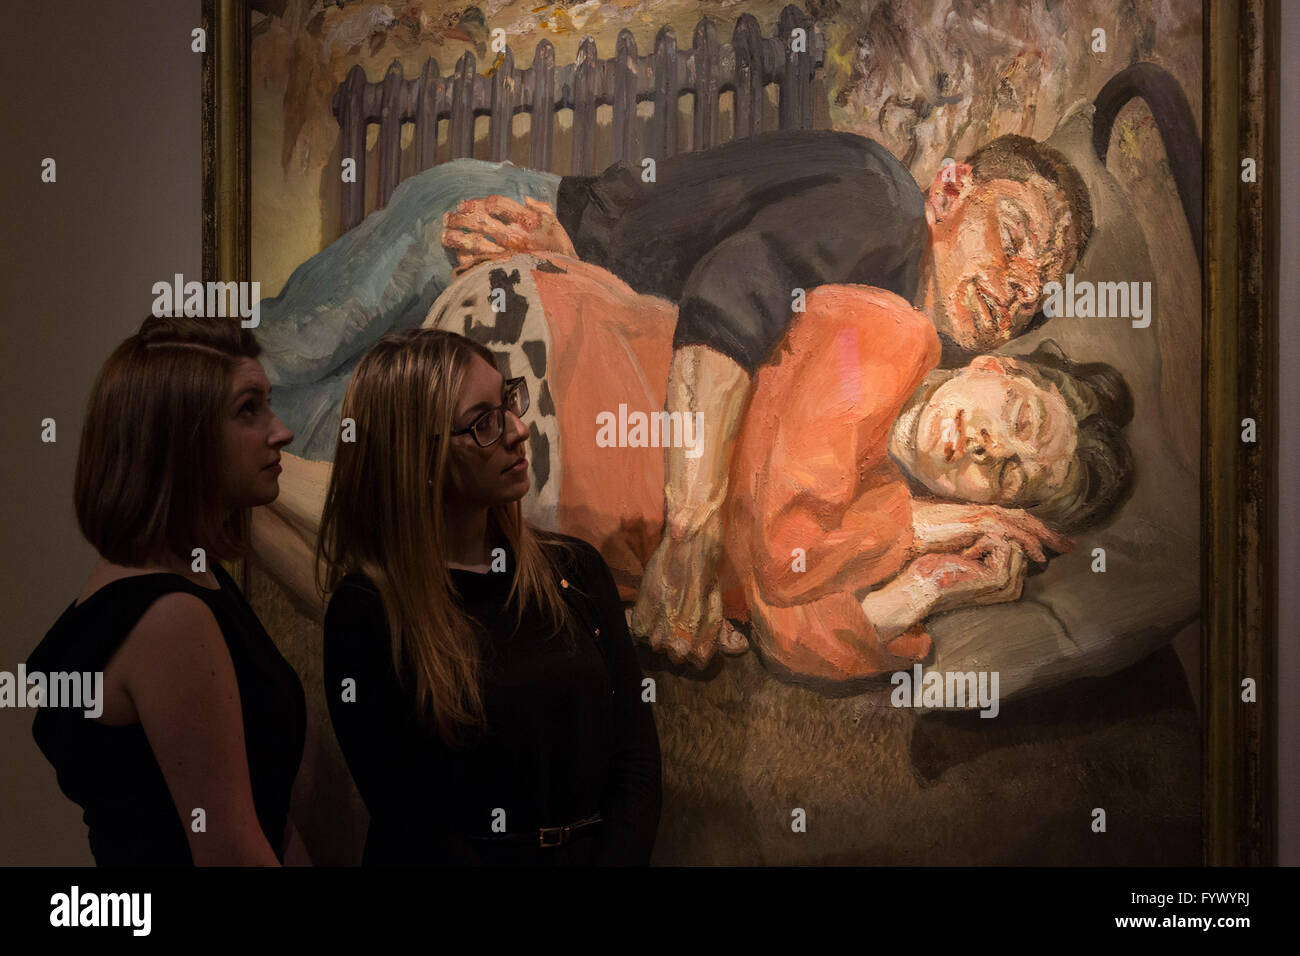 London, UK. 28 April 2016. Christie's employees look at the painting Ib and Her Husband, 1992, by Lucian Freud, - Stock Image